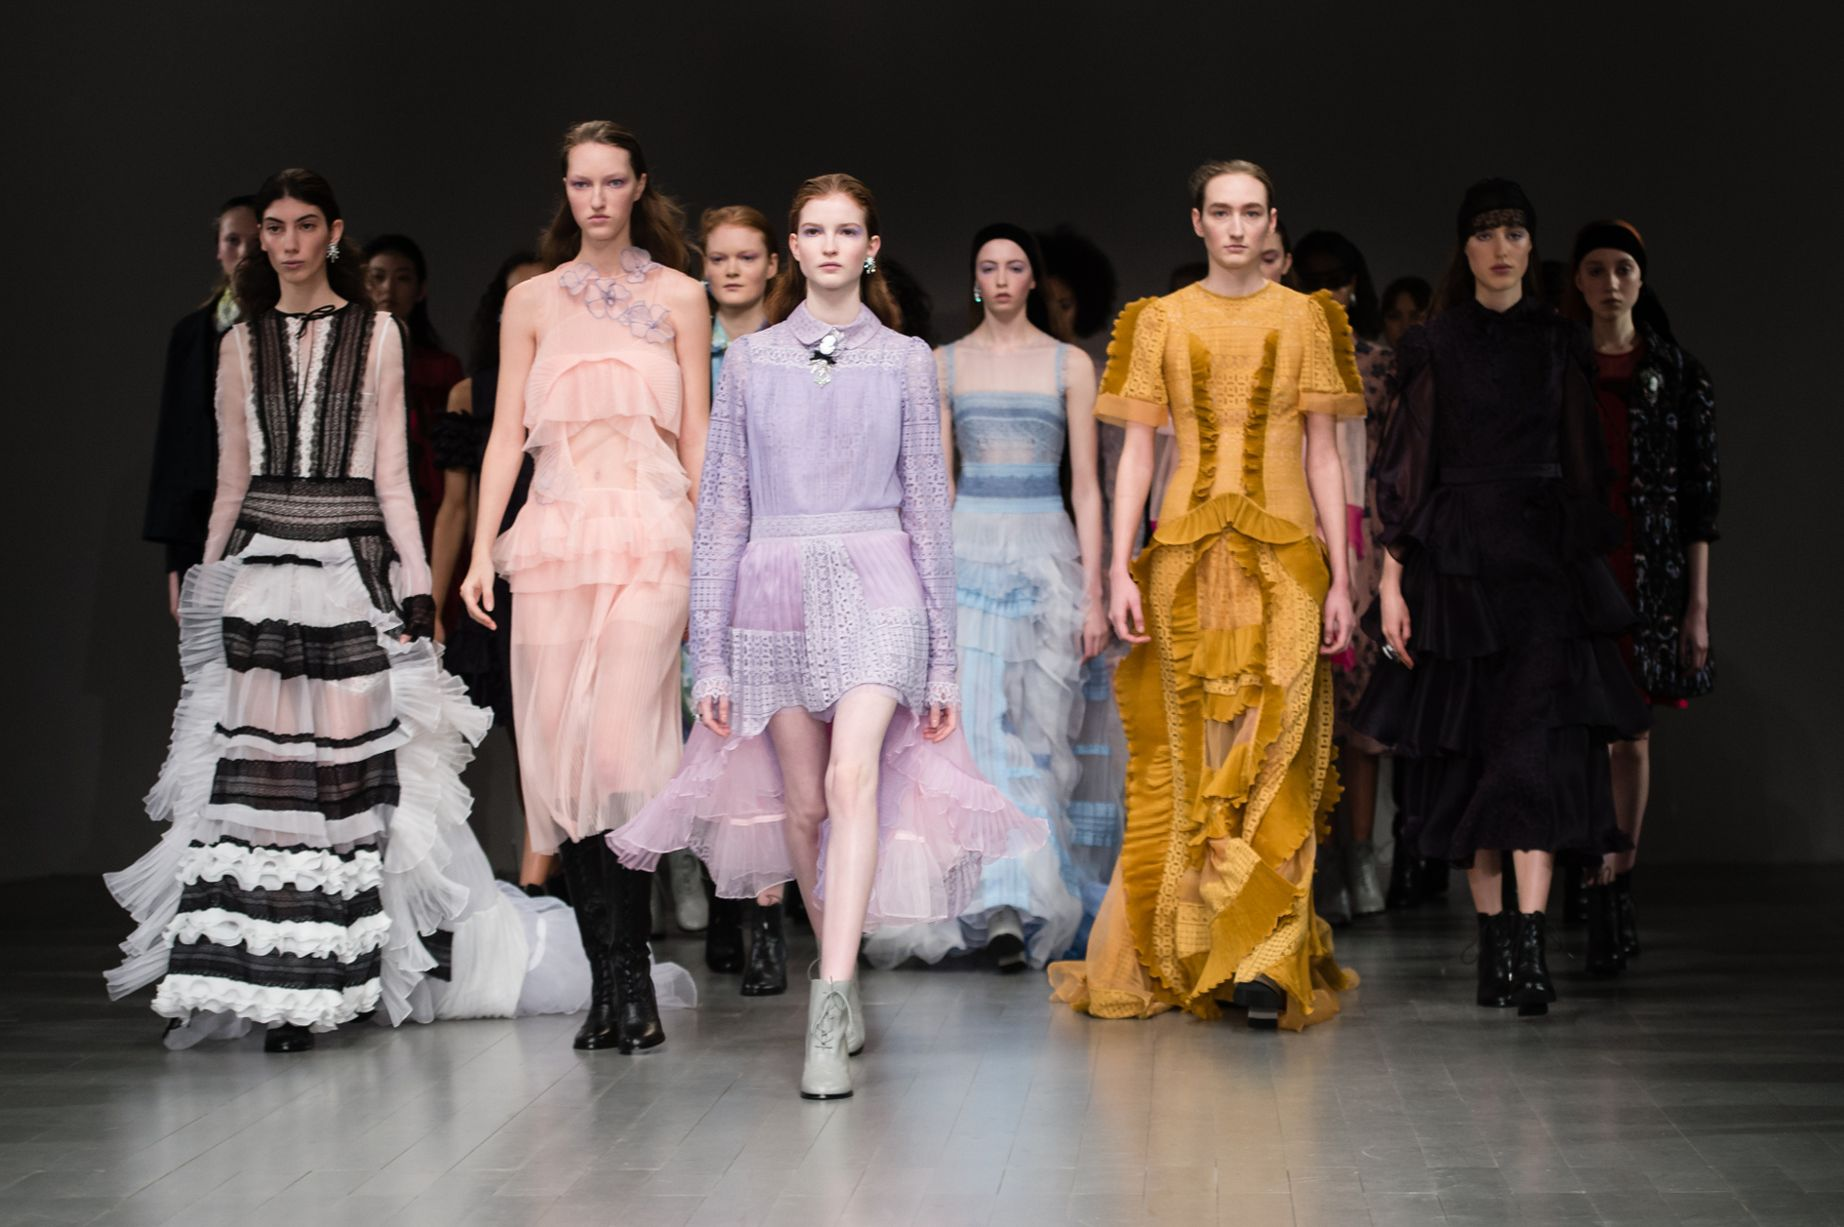 bora-aksu-show-runway-fall-winter-2018-london-fashion-week-uk-16-feb-2018.jpg